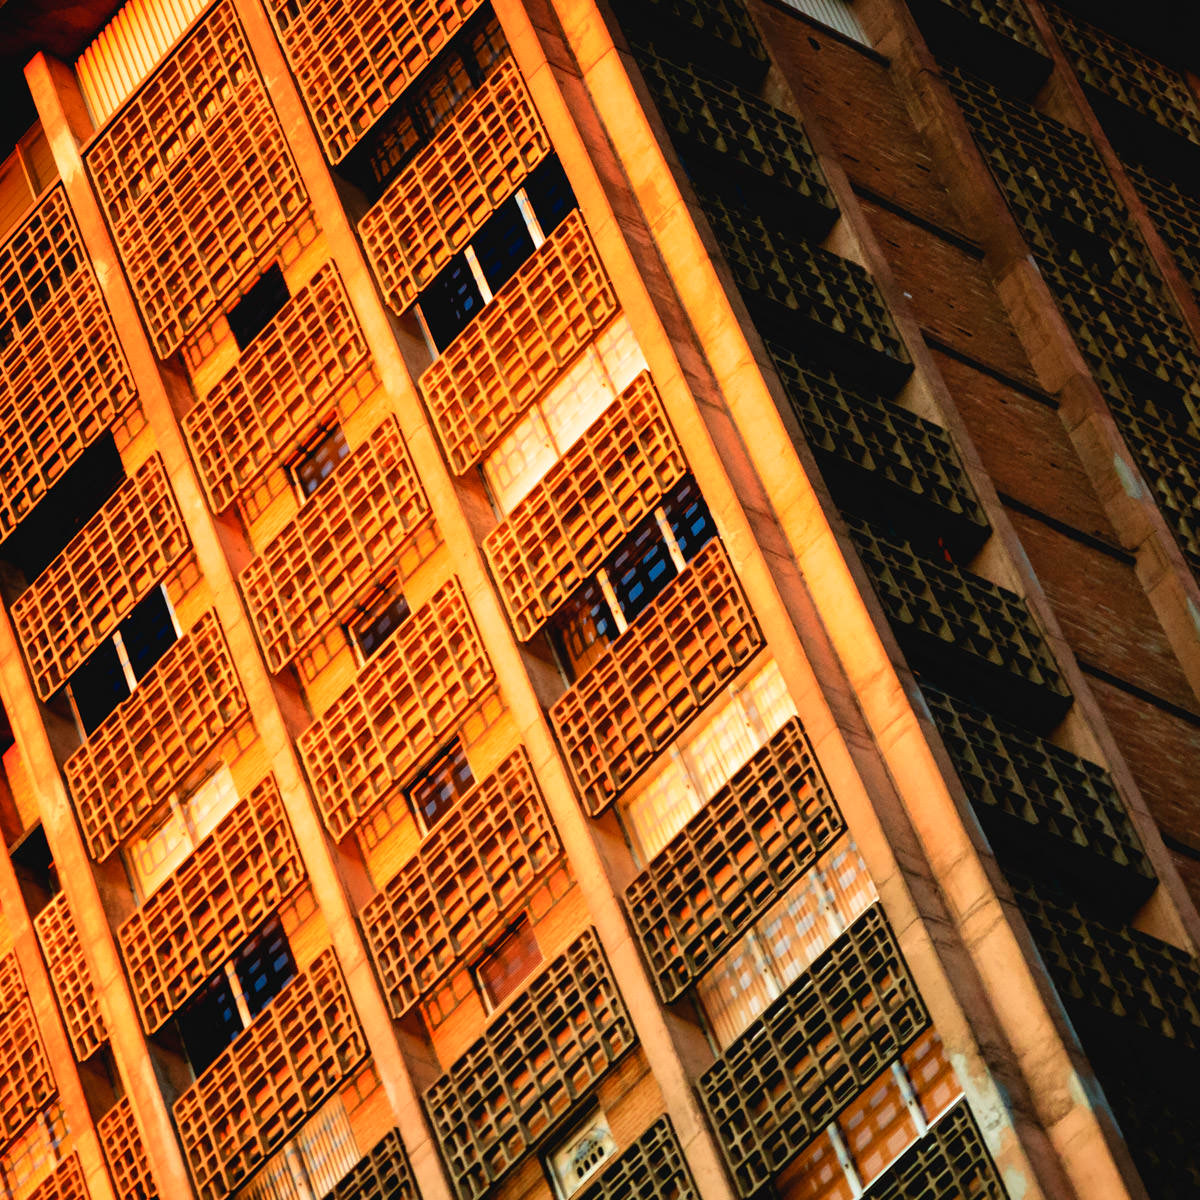 Abstract detail of a condo tower in Uptown Dallas.